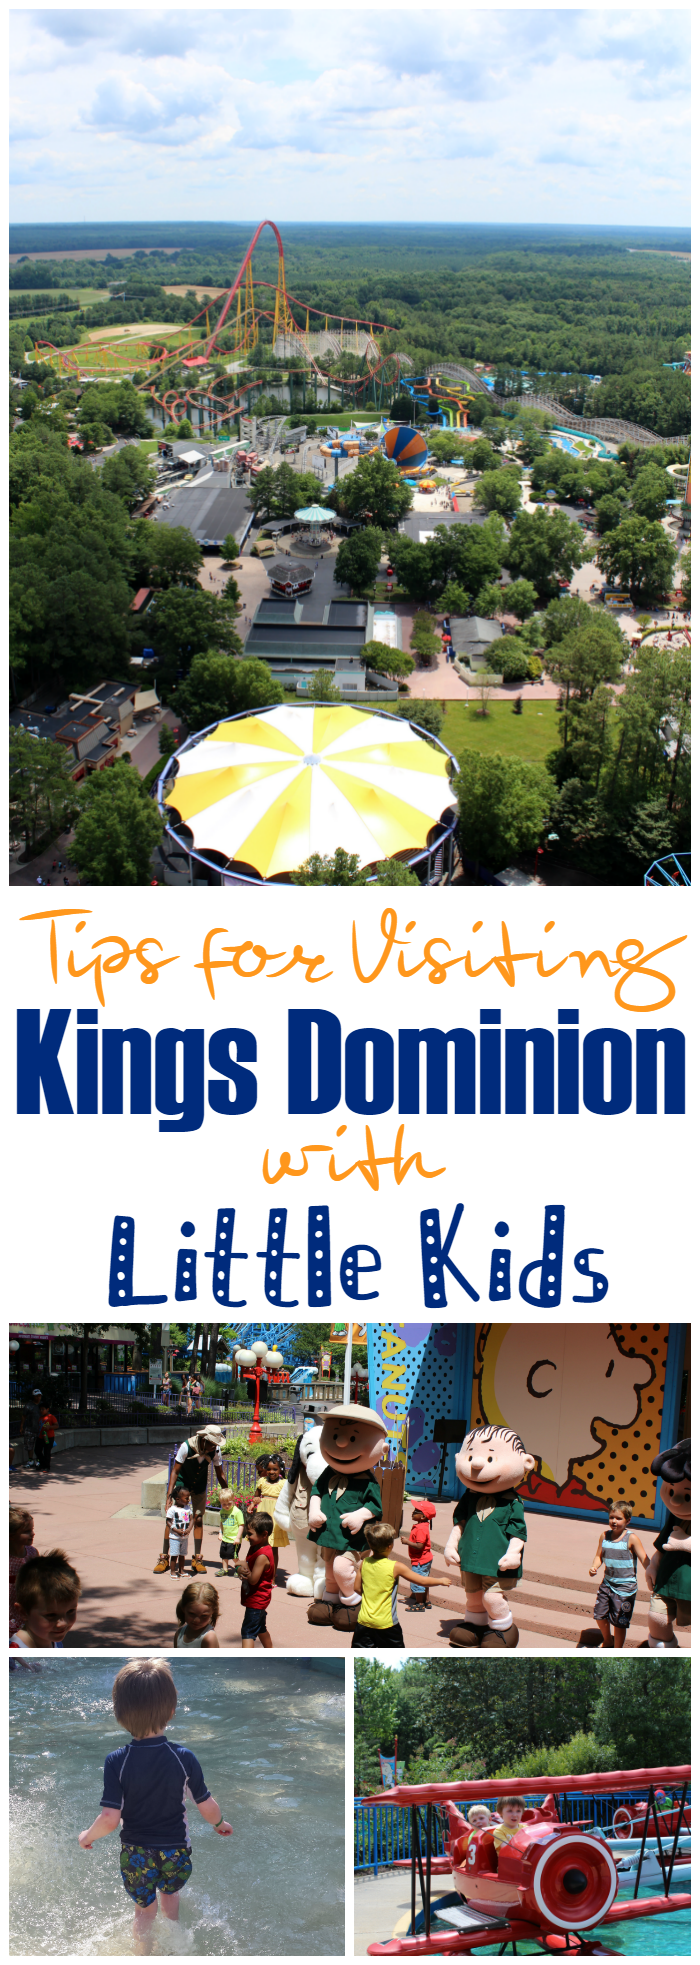 Tips for Visiting Kings Dominion with Little Kids - Visiting amusement parks with little kids can be exhausting, but we have tips for visiting Kings Dominion that will make sure you all have a great time!